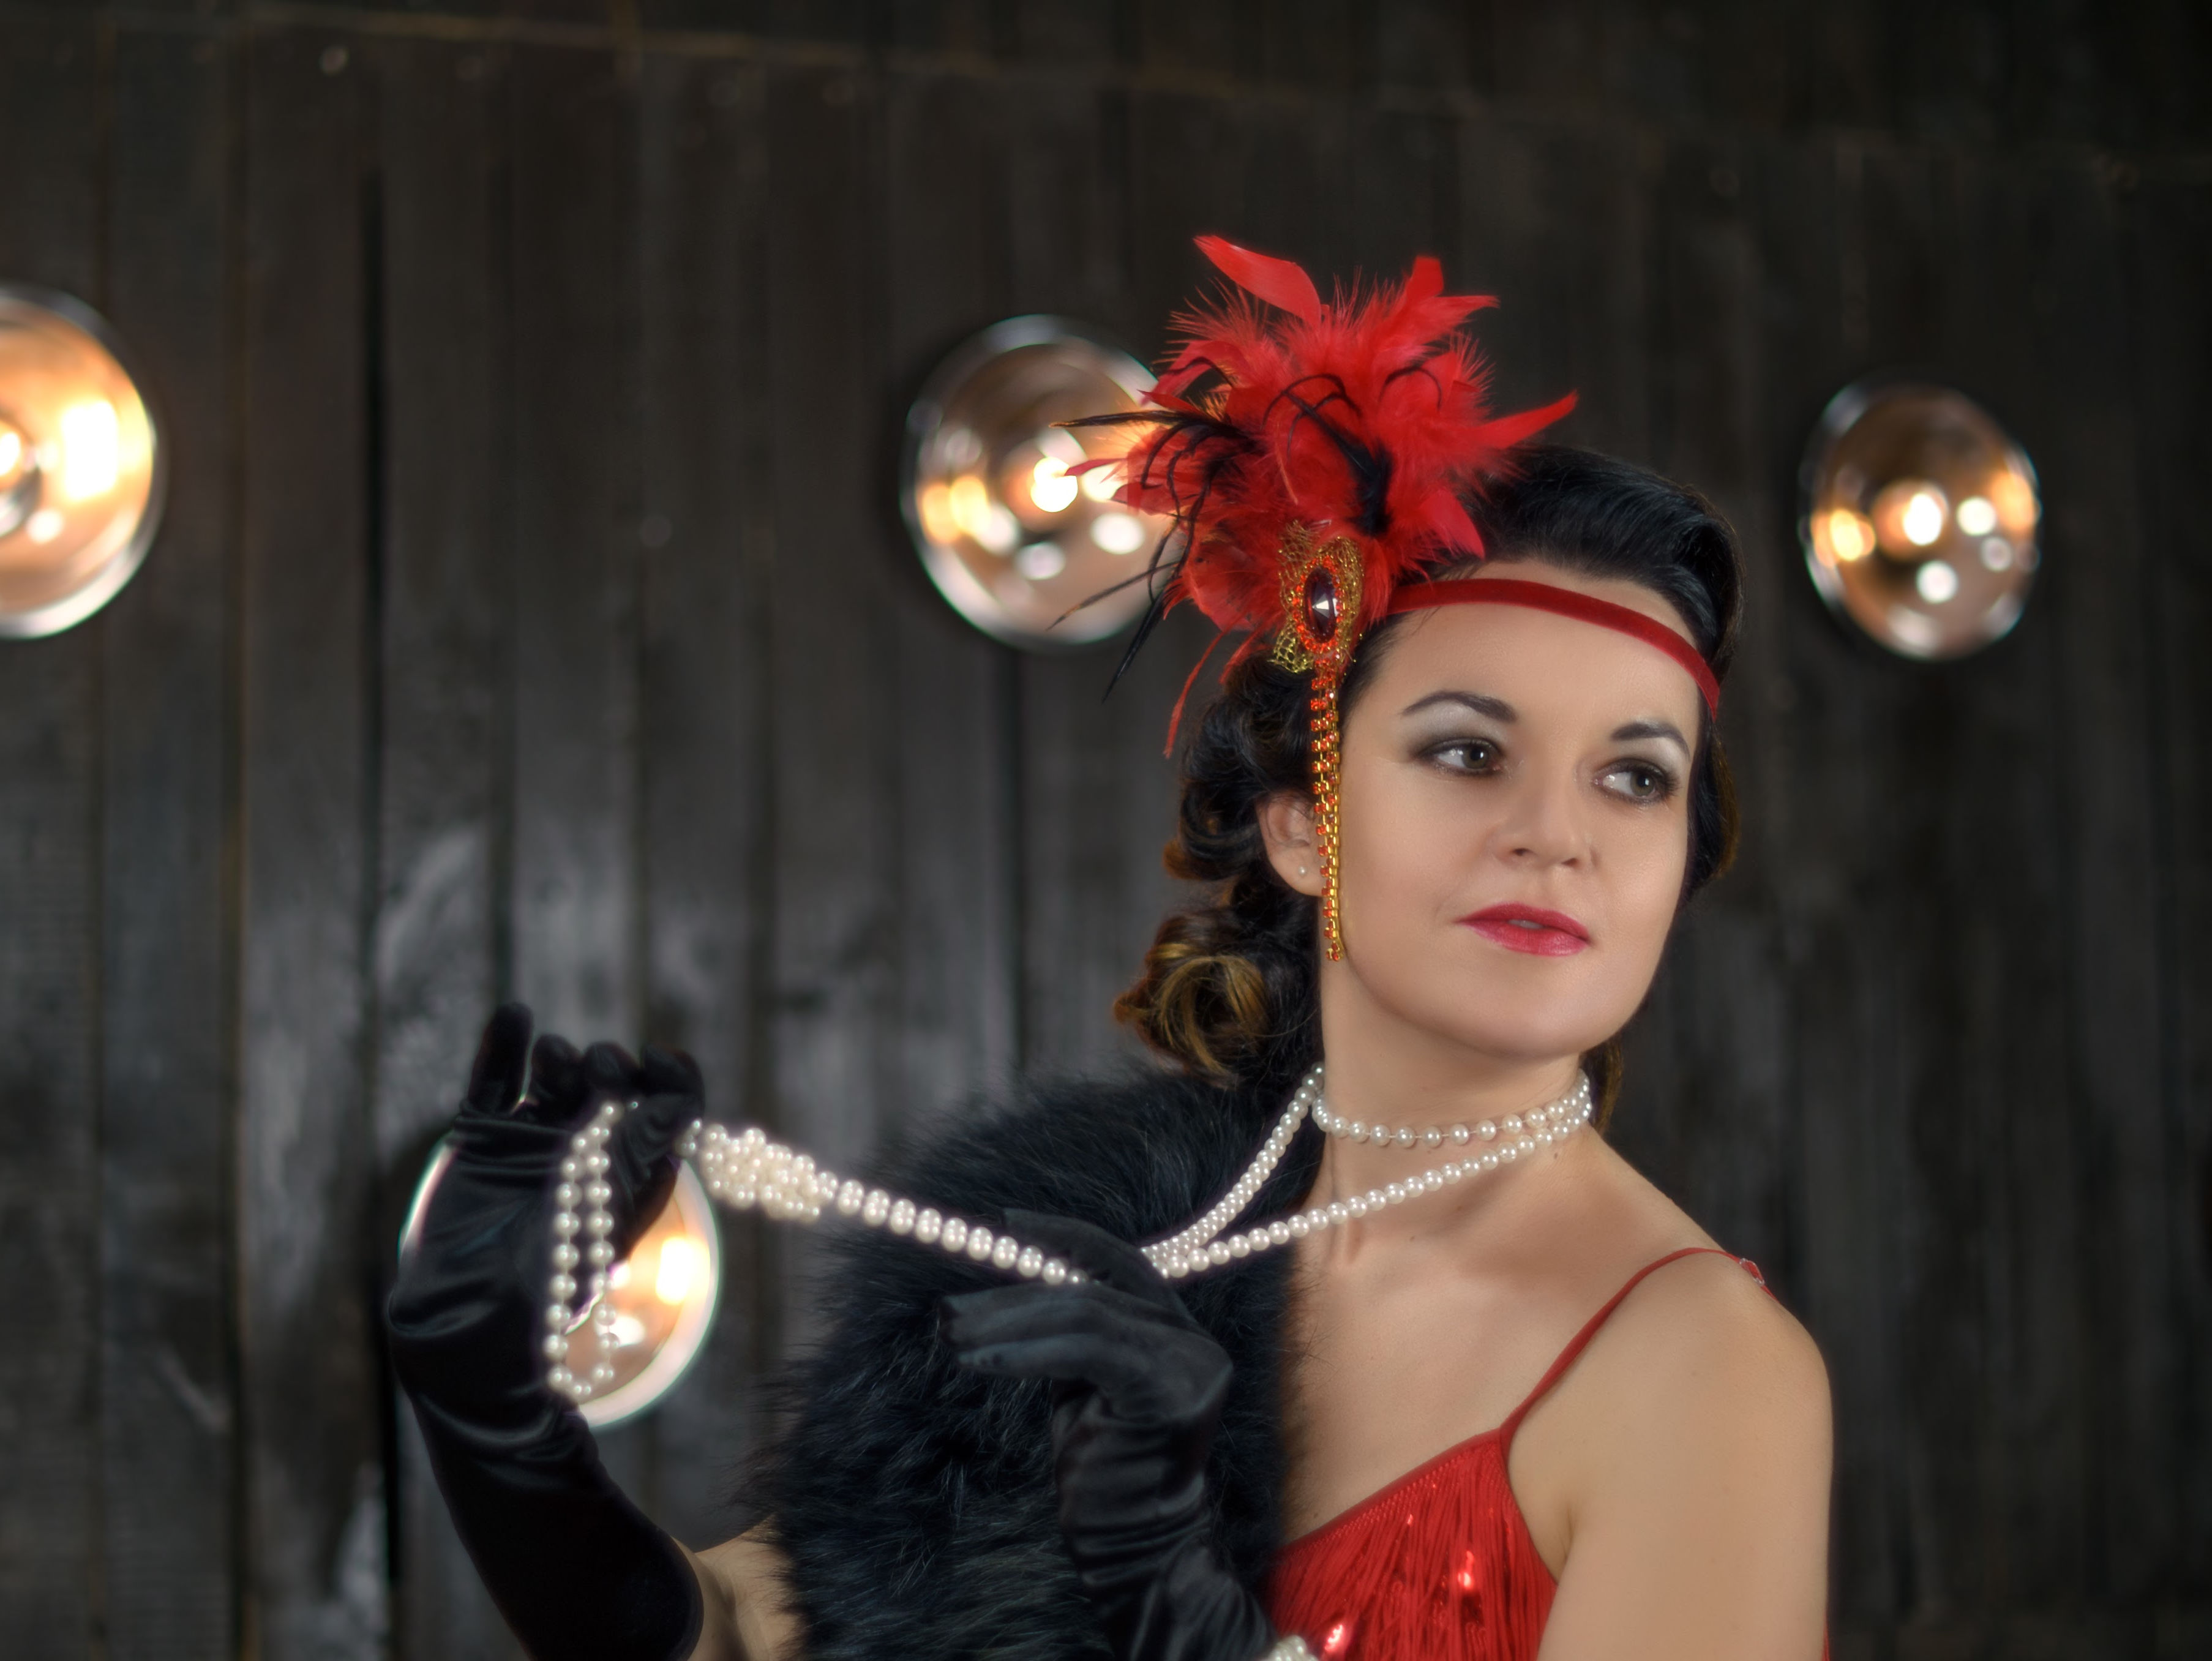 Gatsby-Party-For-50th-Birthday.  Enter into the world of the roaring 20's.  Take advantage of the music and clothes of this distinctive time.  50th birthday party ideas for women.